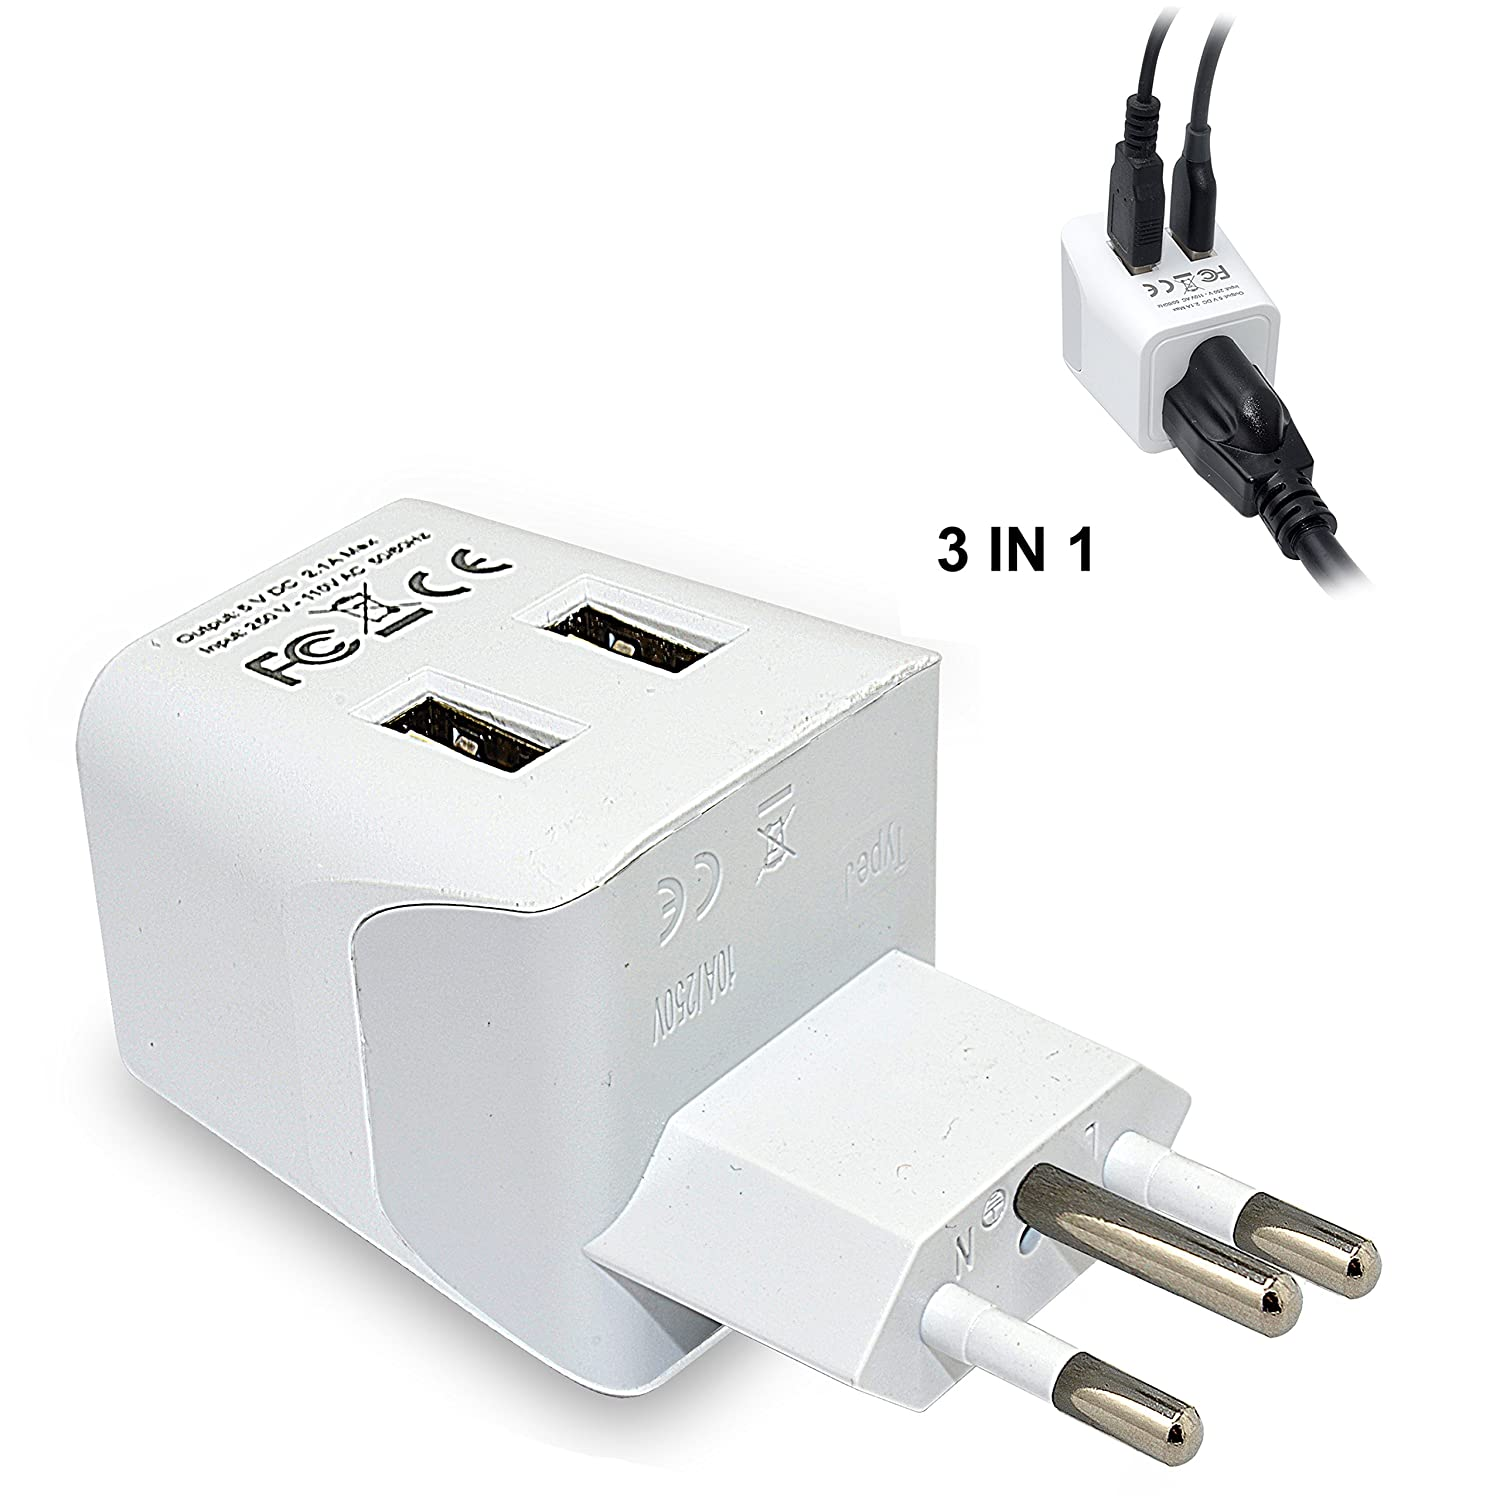 Ceptics CTU-7 USA to UK, Hong Kong Travel Adapter Plug with Dual USB - Type G - Ultra Compact